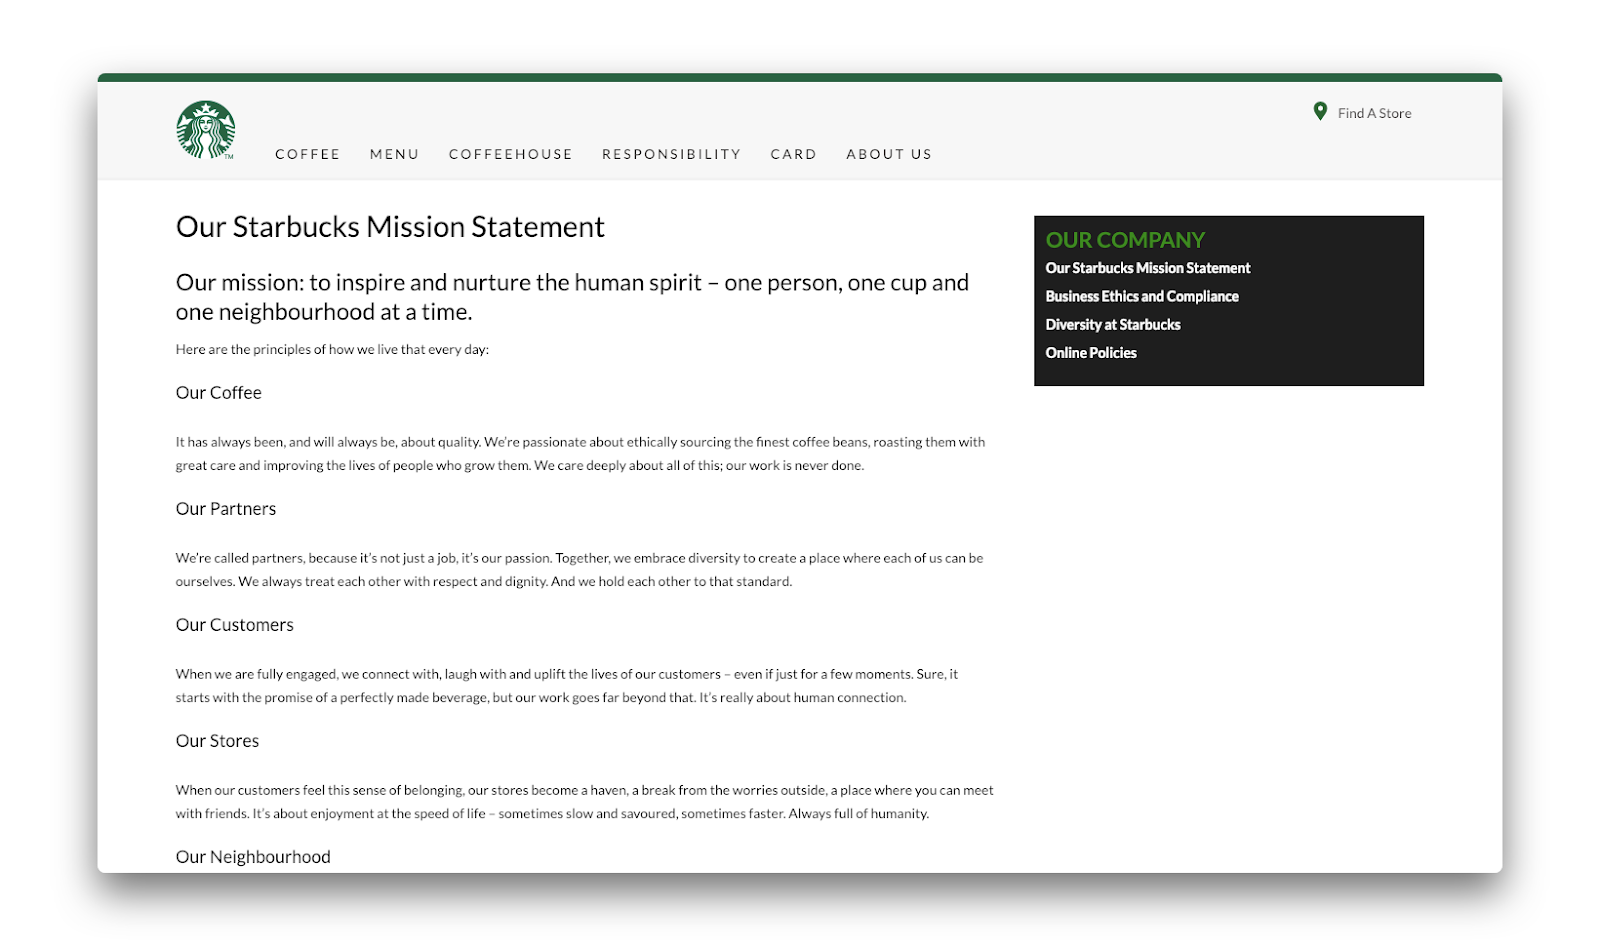 The Mission Statement Page of the Starbucks website